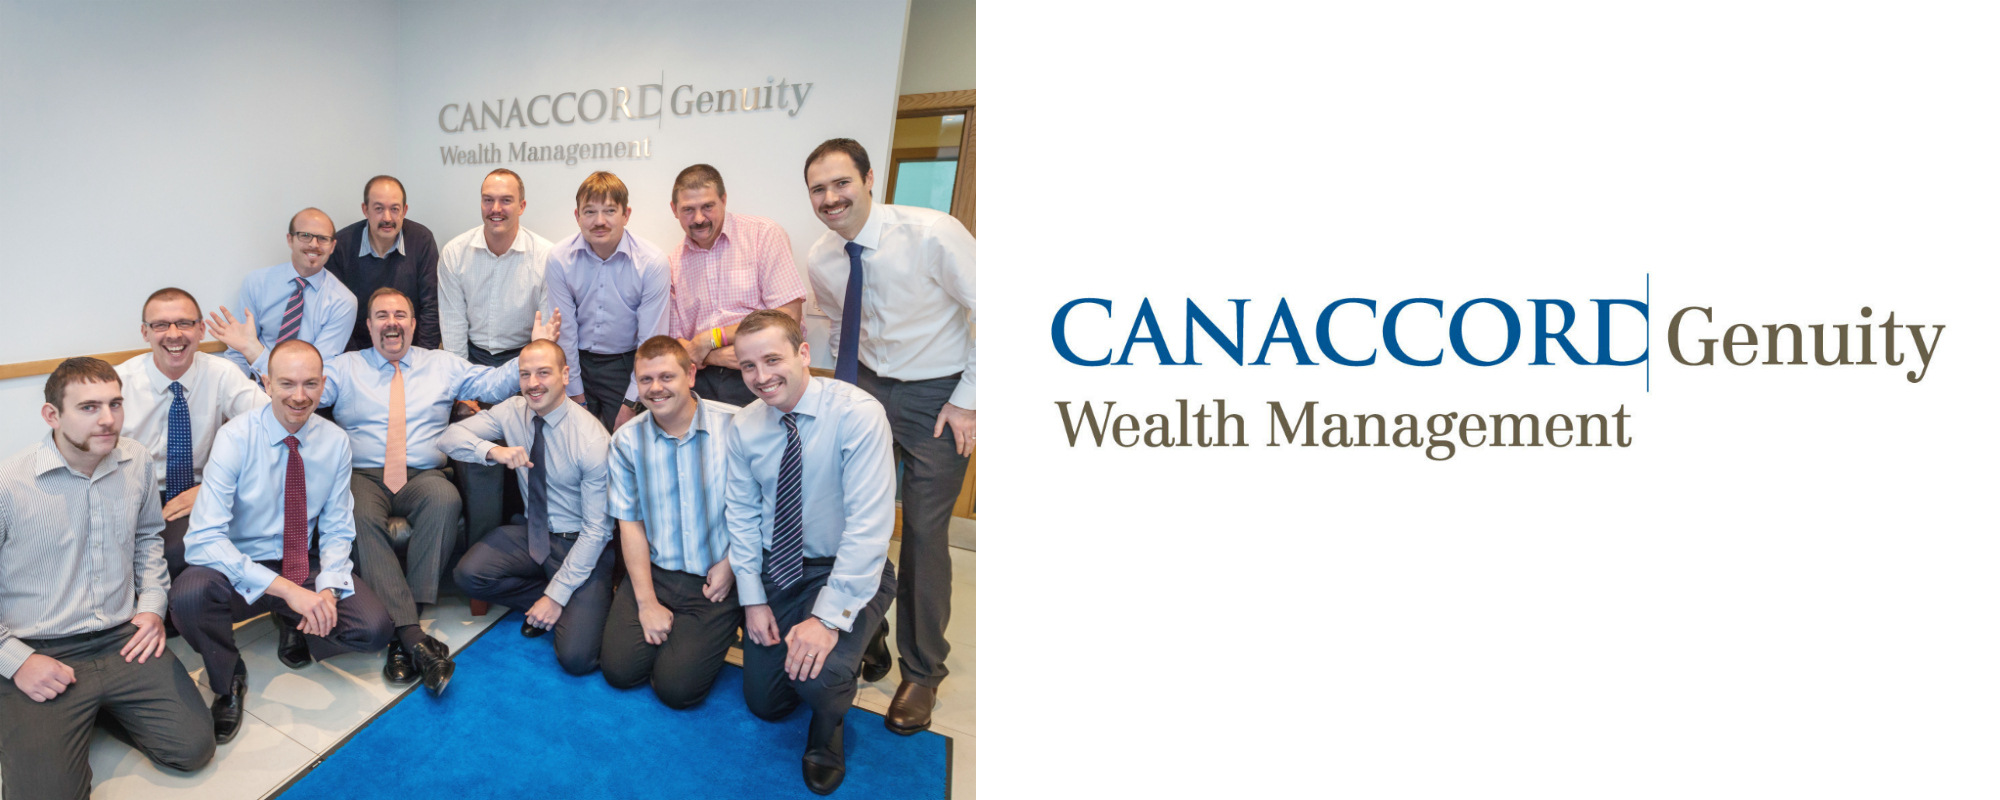 Most Powerful M&A Firms in the world best upslide canaccord genuity wealth management